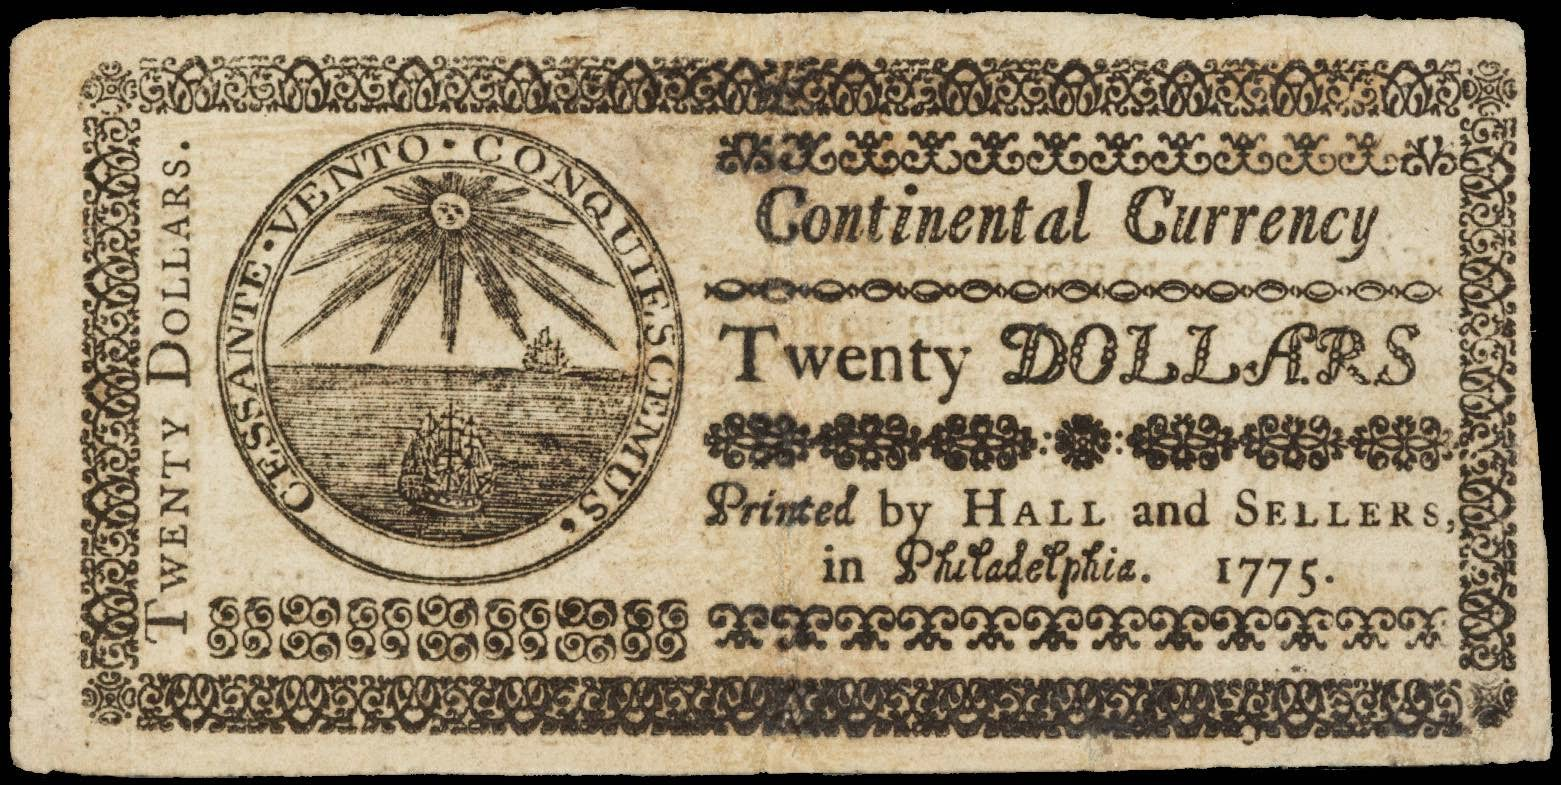 Early American currency 20 Dollar bill